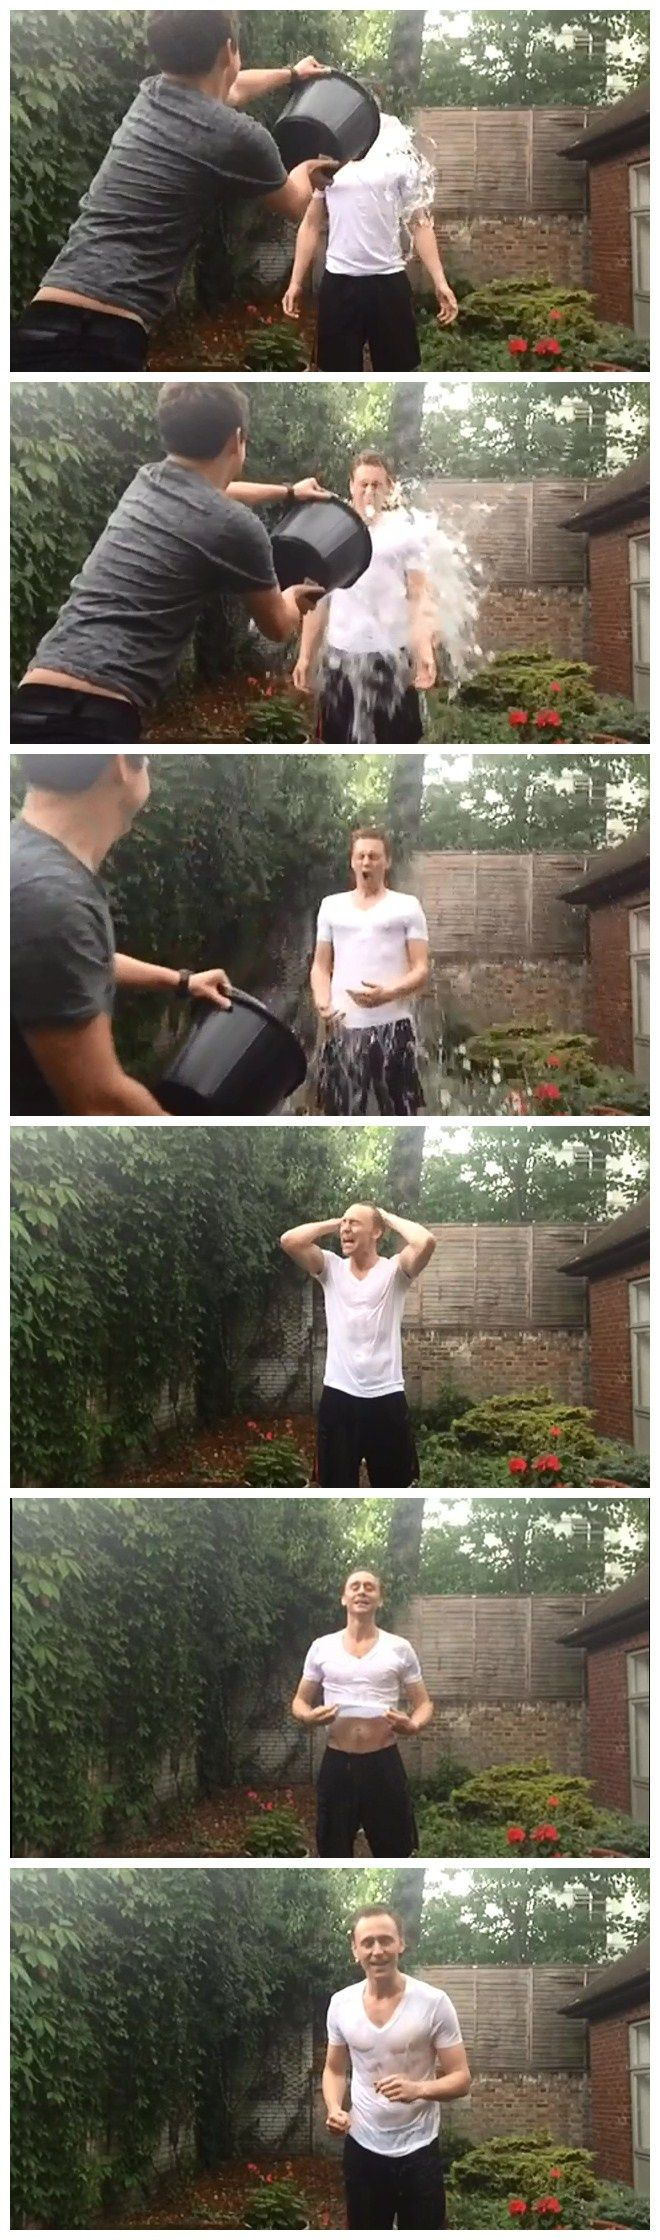 Tom Hiddleston ALS Ice Bucket Challenge (Complete Version)<<Thank goodness for all of this. I wonder if he even has half of an idea about how viral this thing went. :)